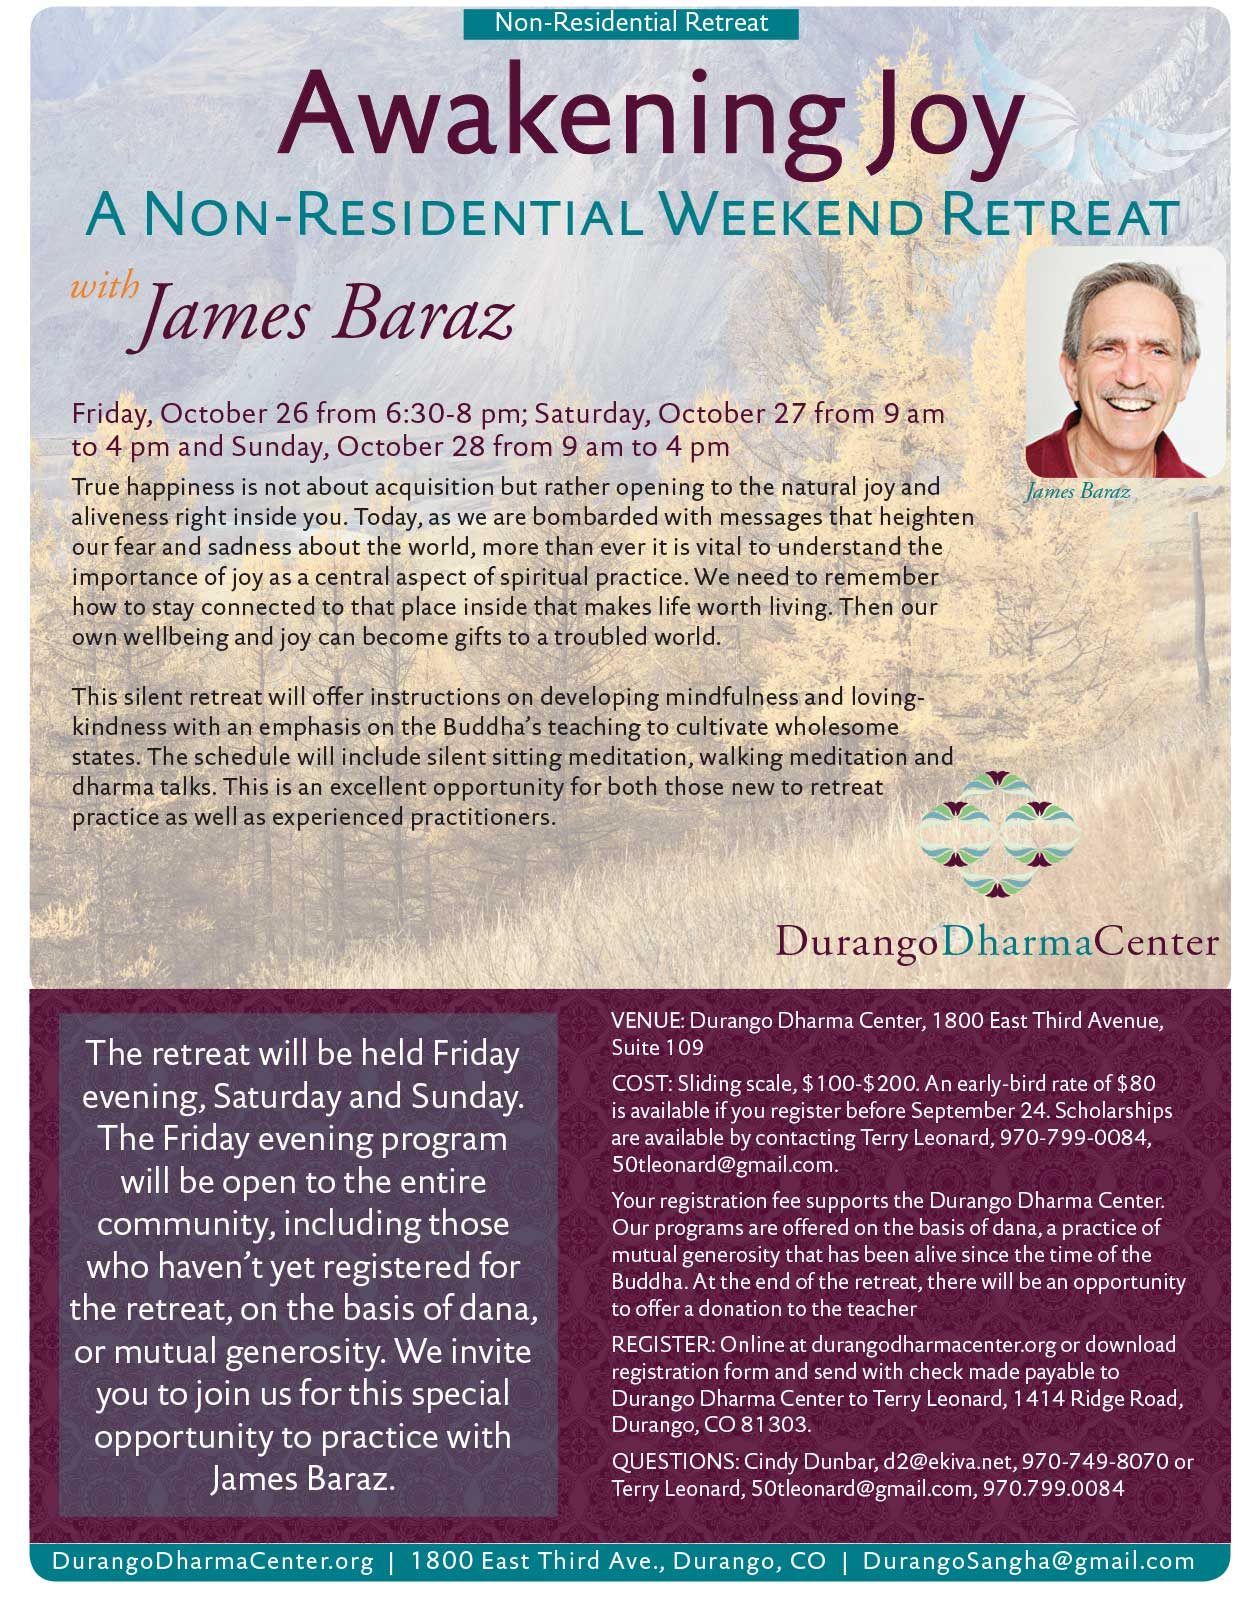 2018-Fall-Non-Residential-Retreat